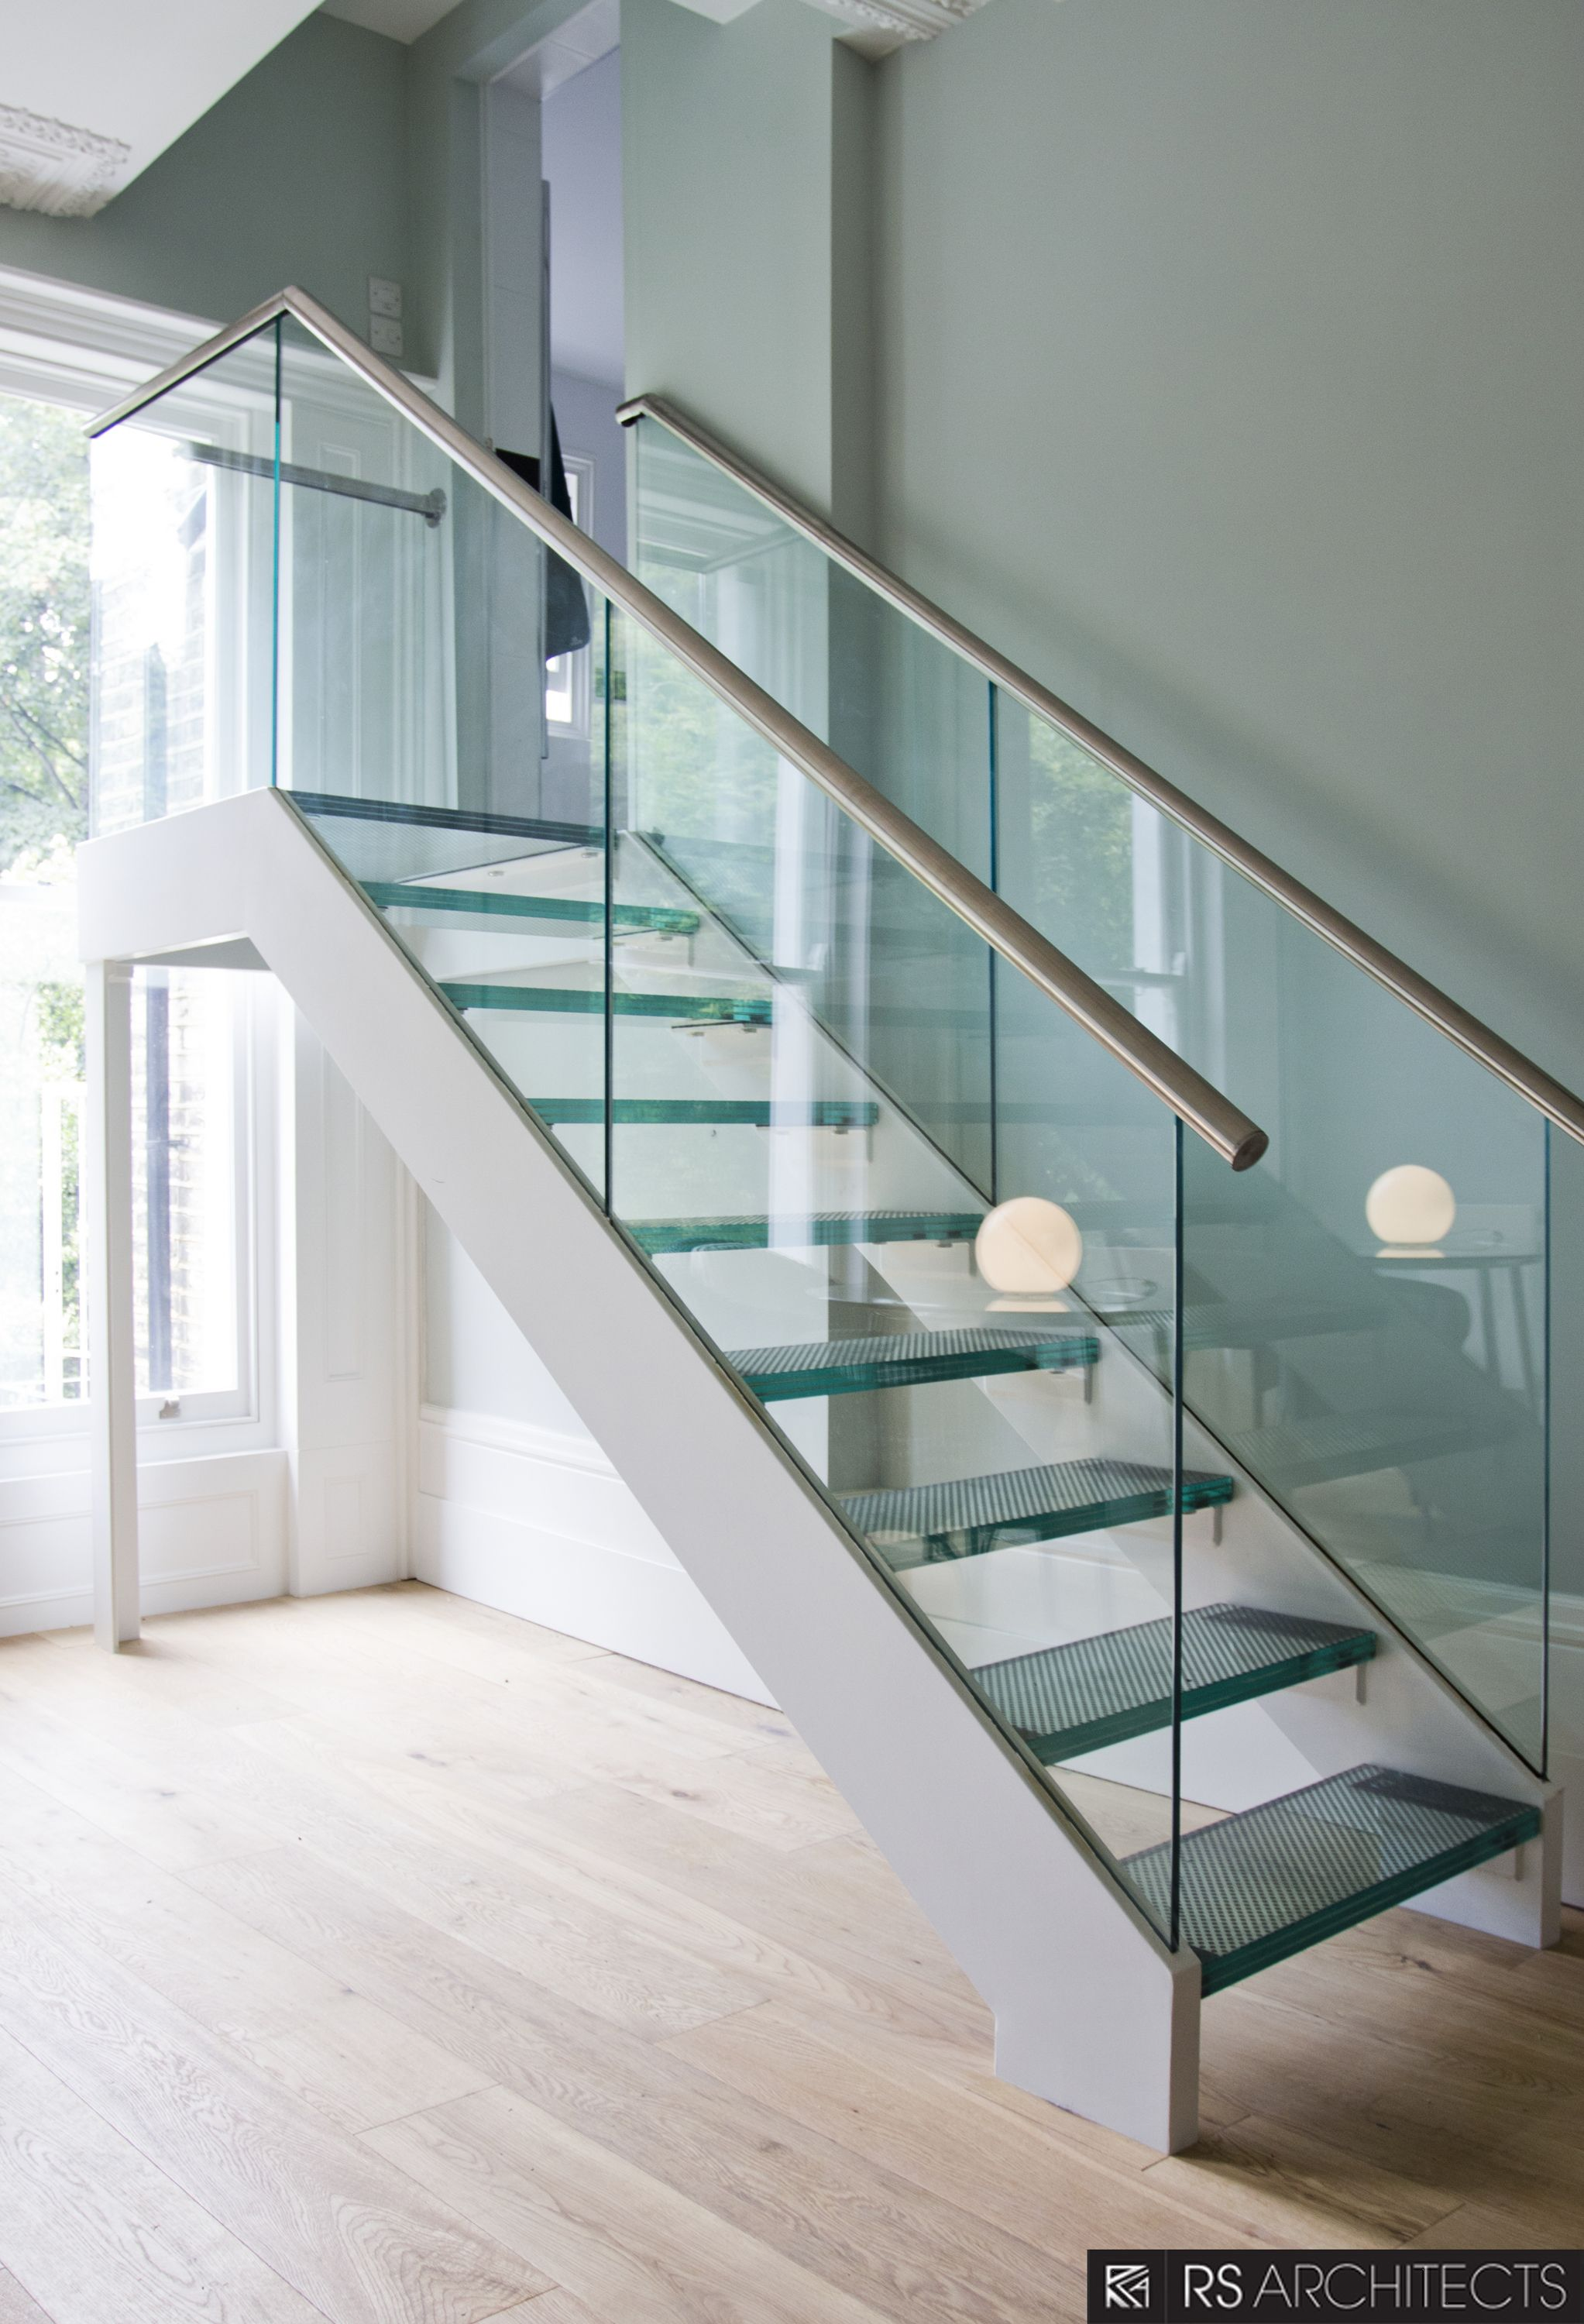 Picturesque Double Chrome Handrail With Glass Balustrade | Glass Balusters For Stairs